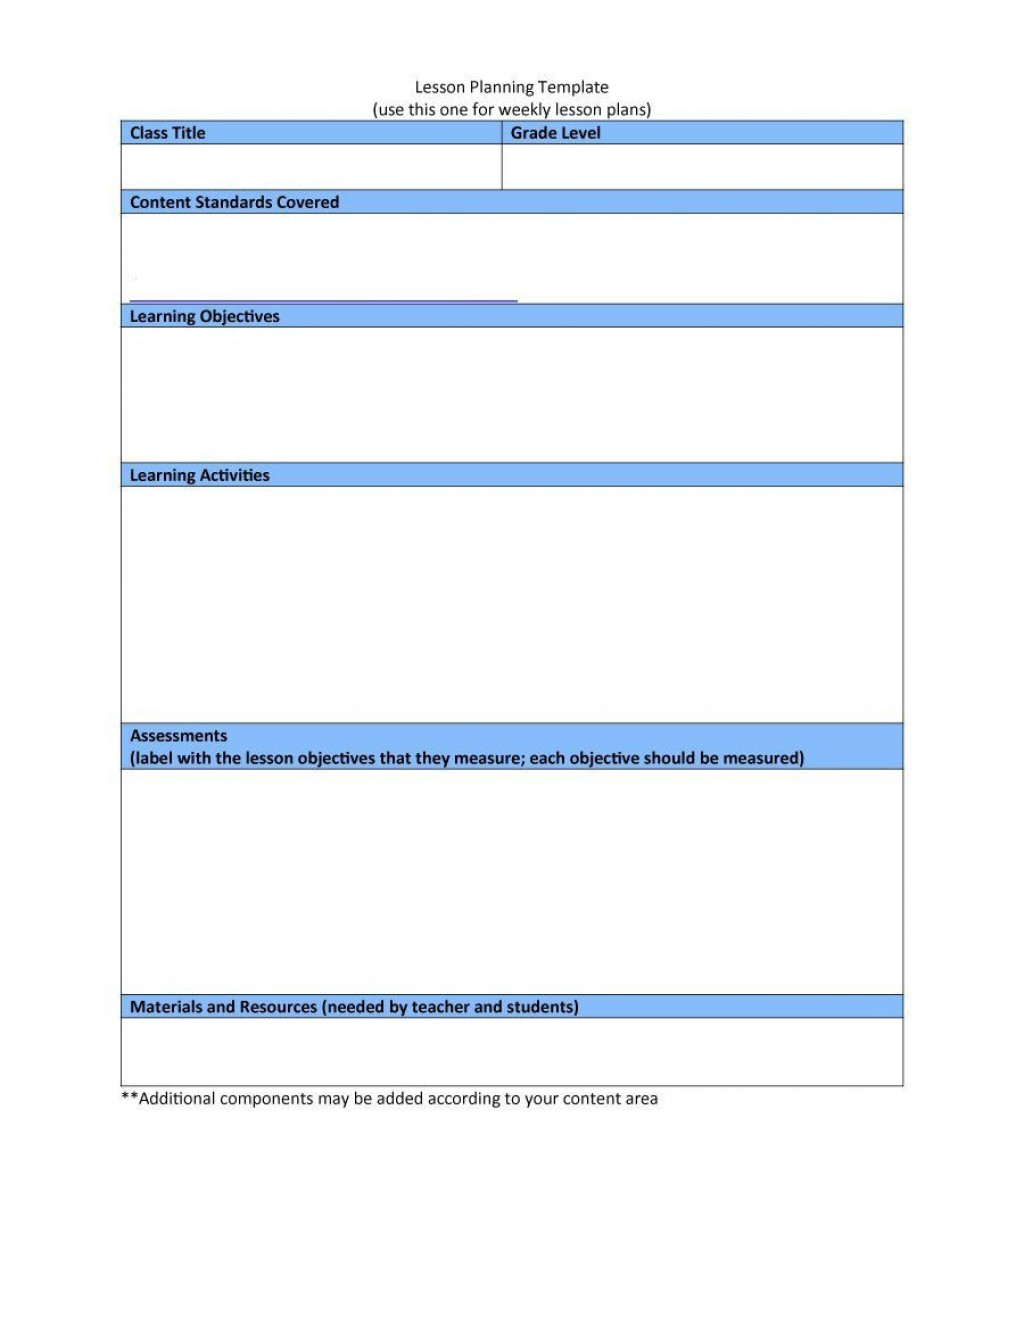 004 Stunning Downloadable Lesson Plan Template High Resolution  Printable Weekly Pdf Free WordLarge